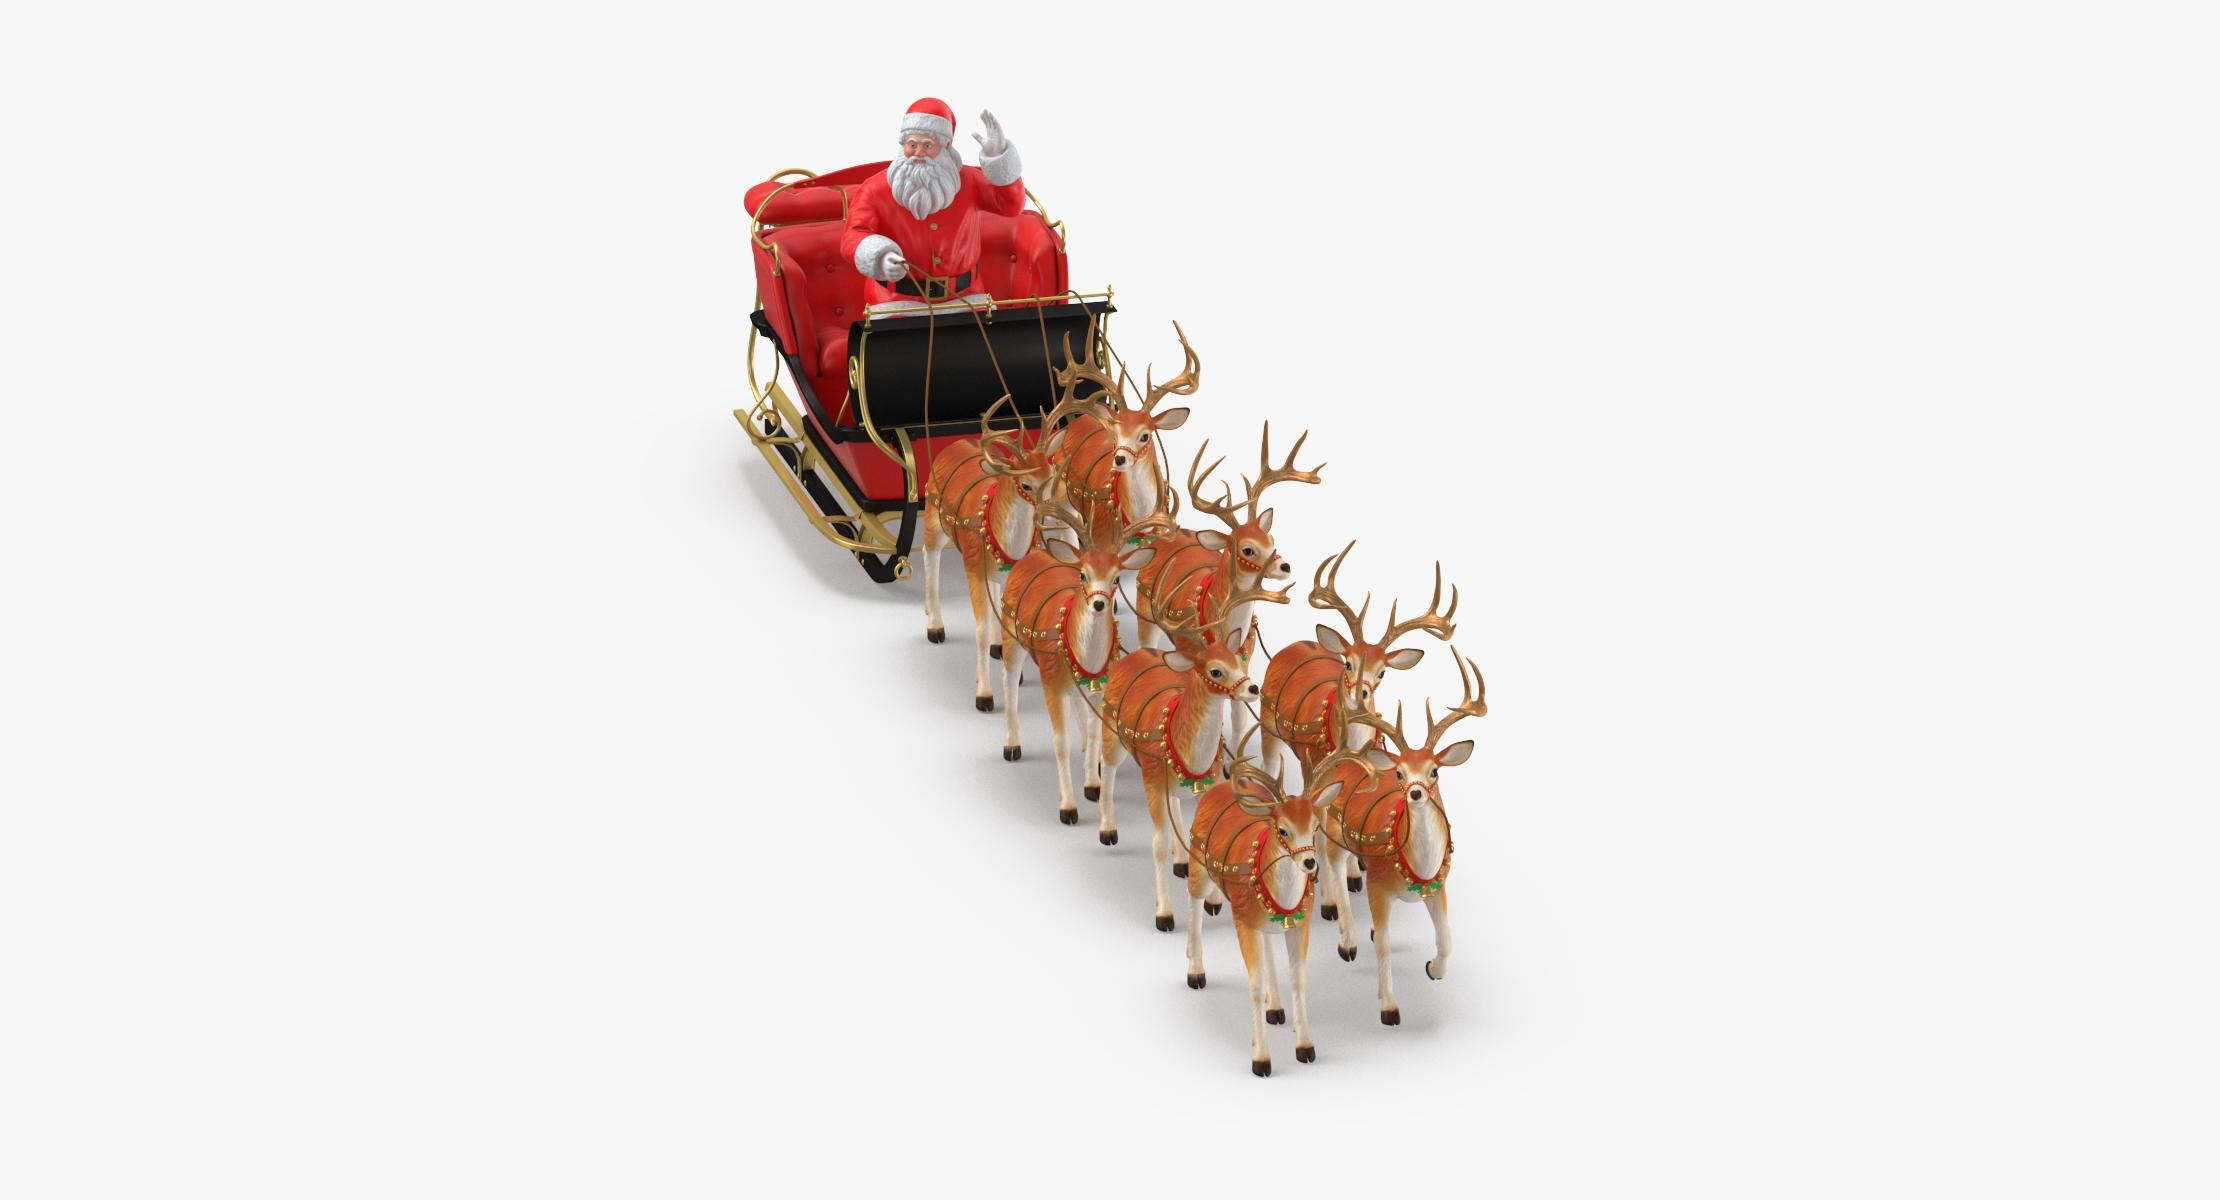 Santa Claus with Sleigh and Reindeer Walking - reel 1